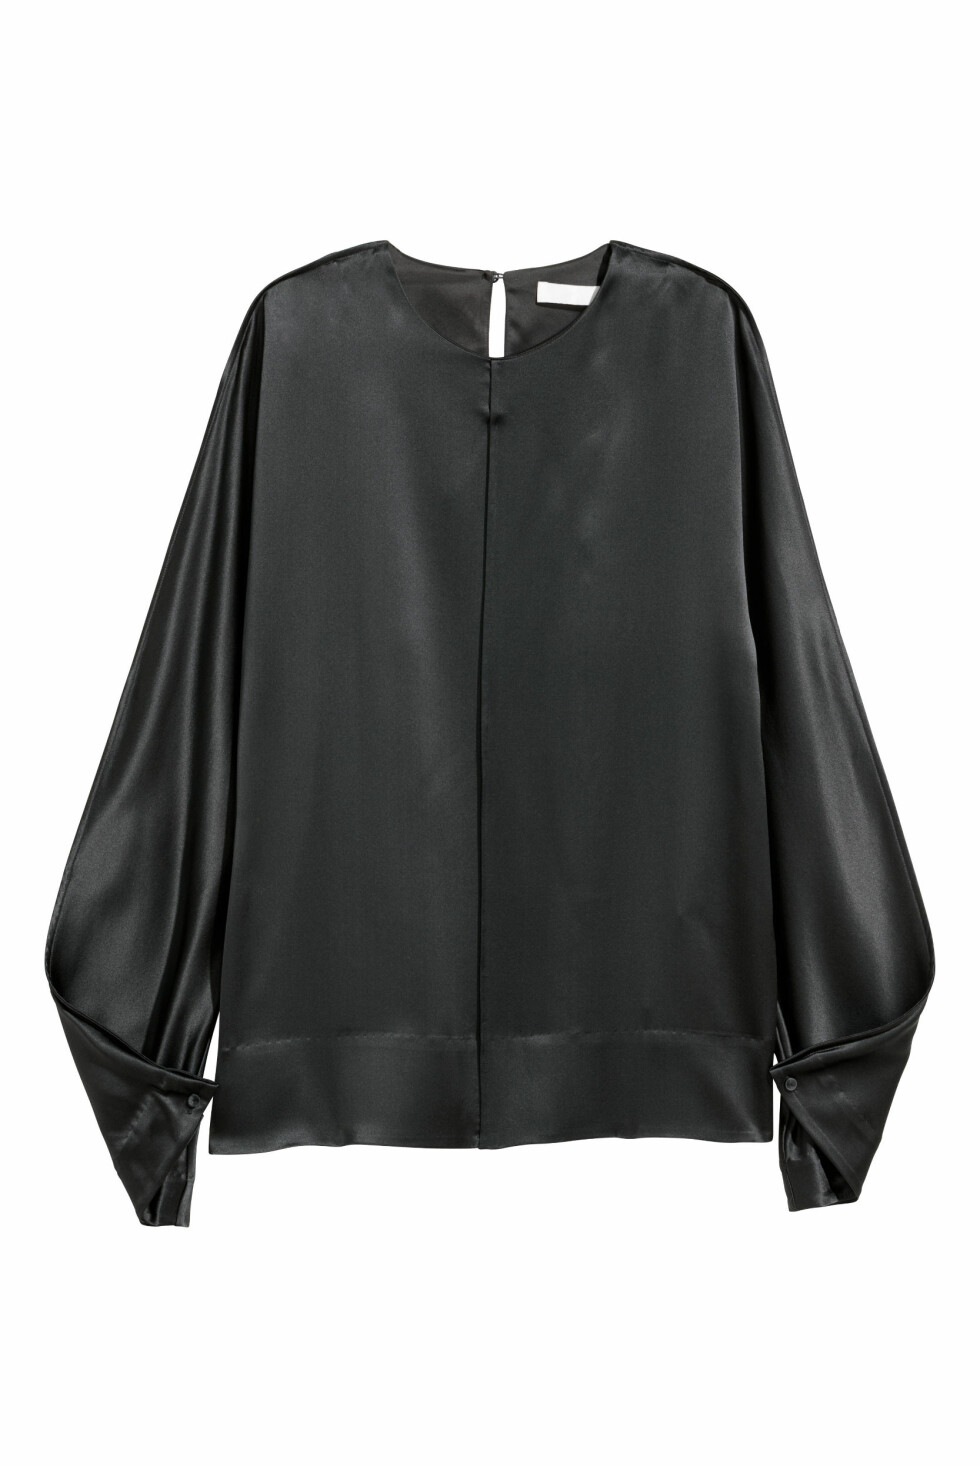 Silkebluse fra H&M |800,-| http://www2.hm.com/no_no/productpage.0618605001.html